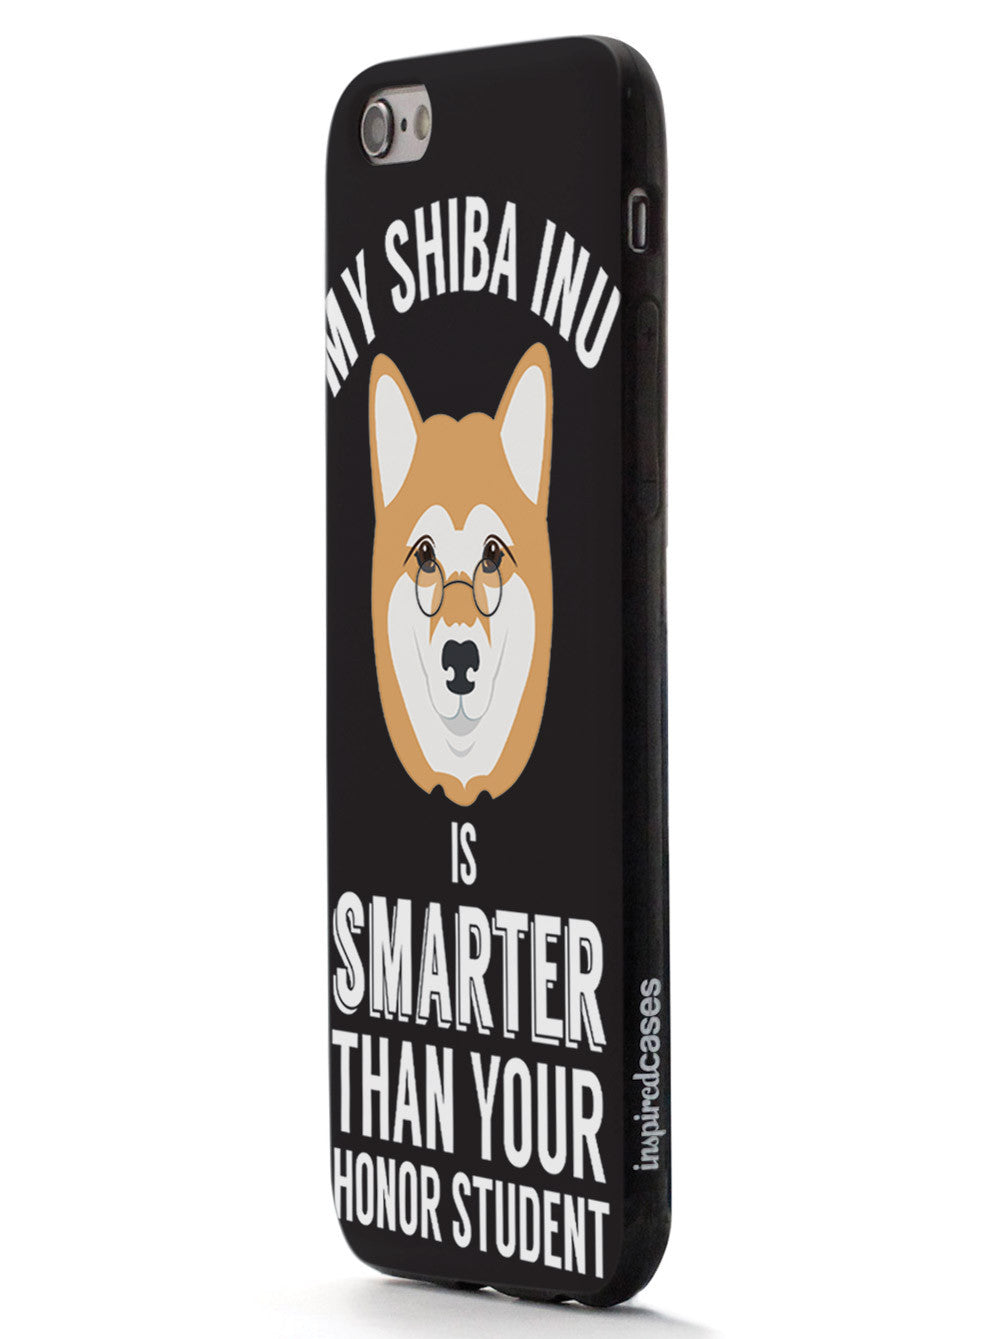 Smarter Than Your Honor Student - Shiba Inu Case